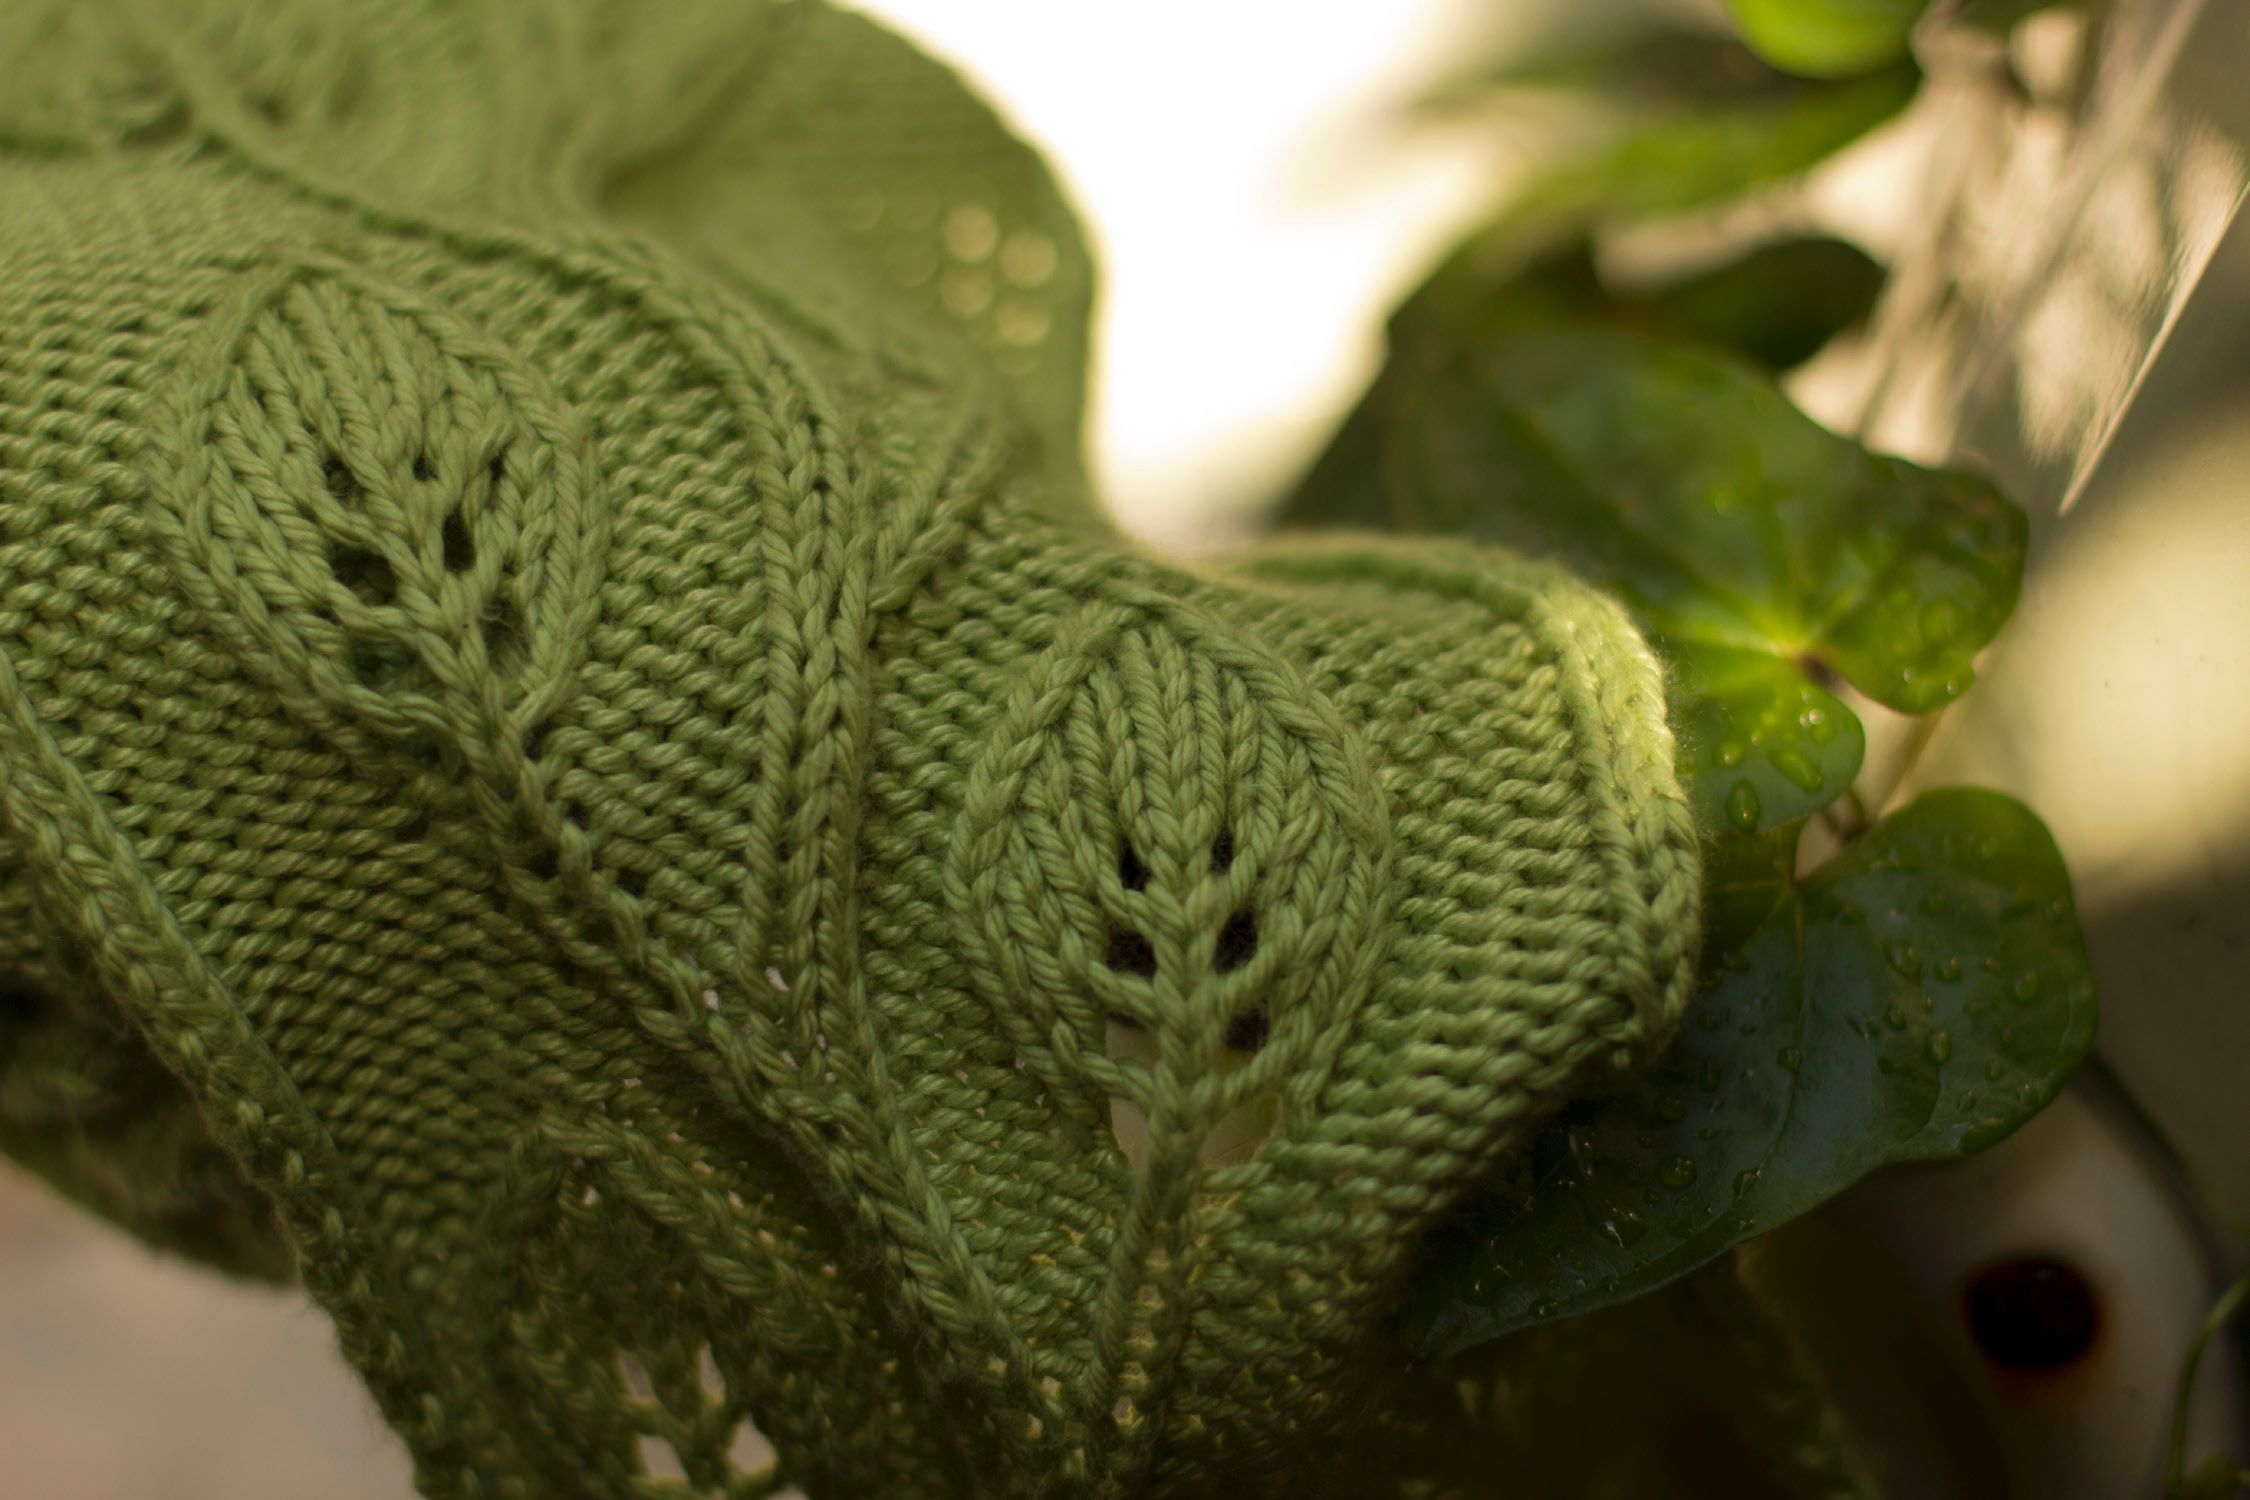 Crochet Scarf Pattern Leaf : Daphne Scarf - Knitting Patterns and Crochet Patterns from ...